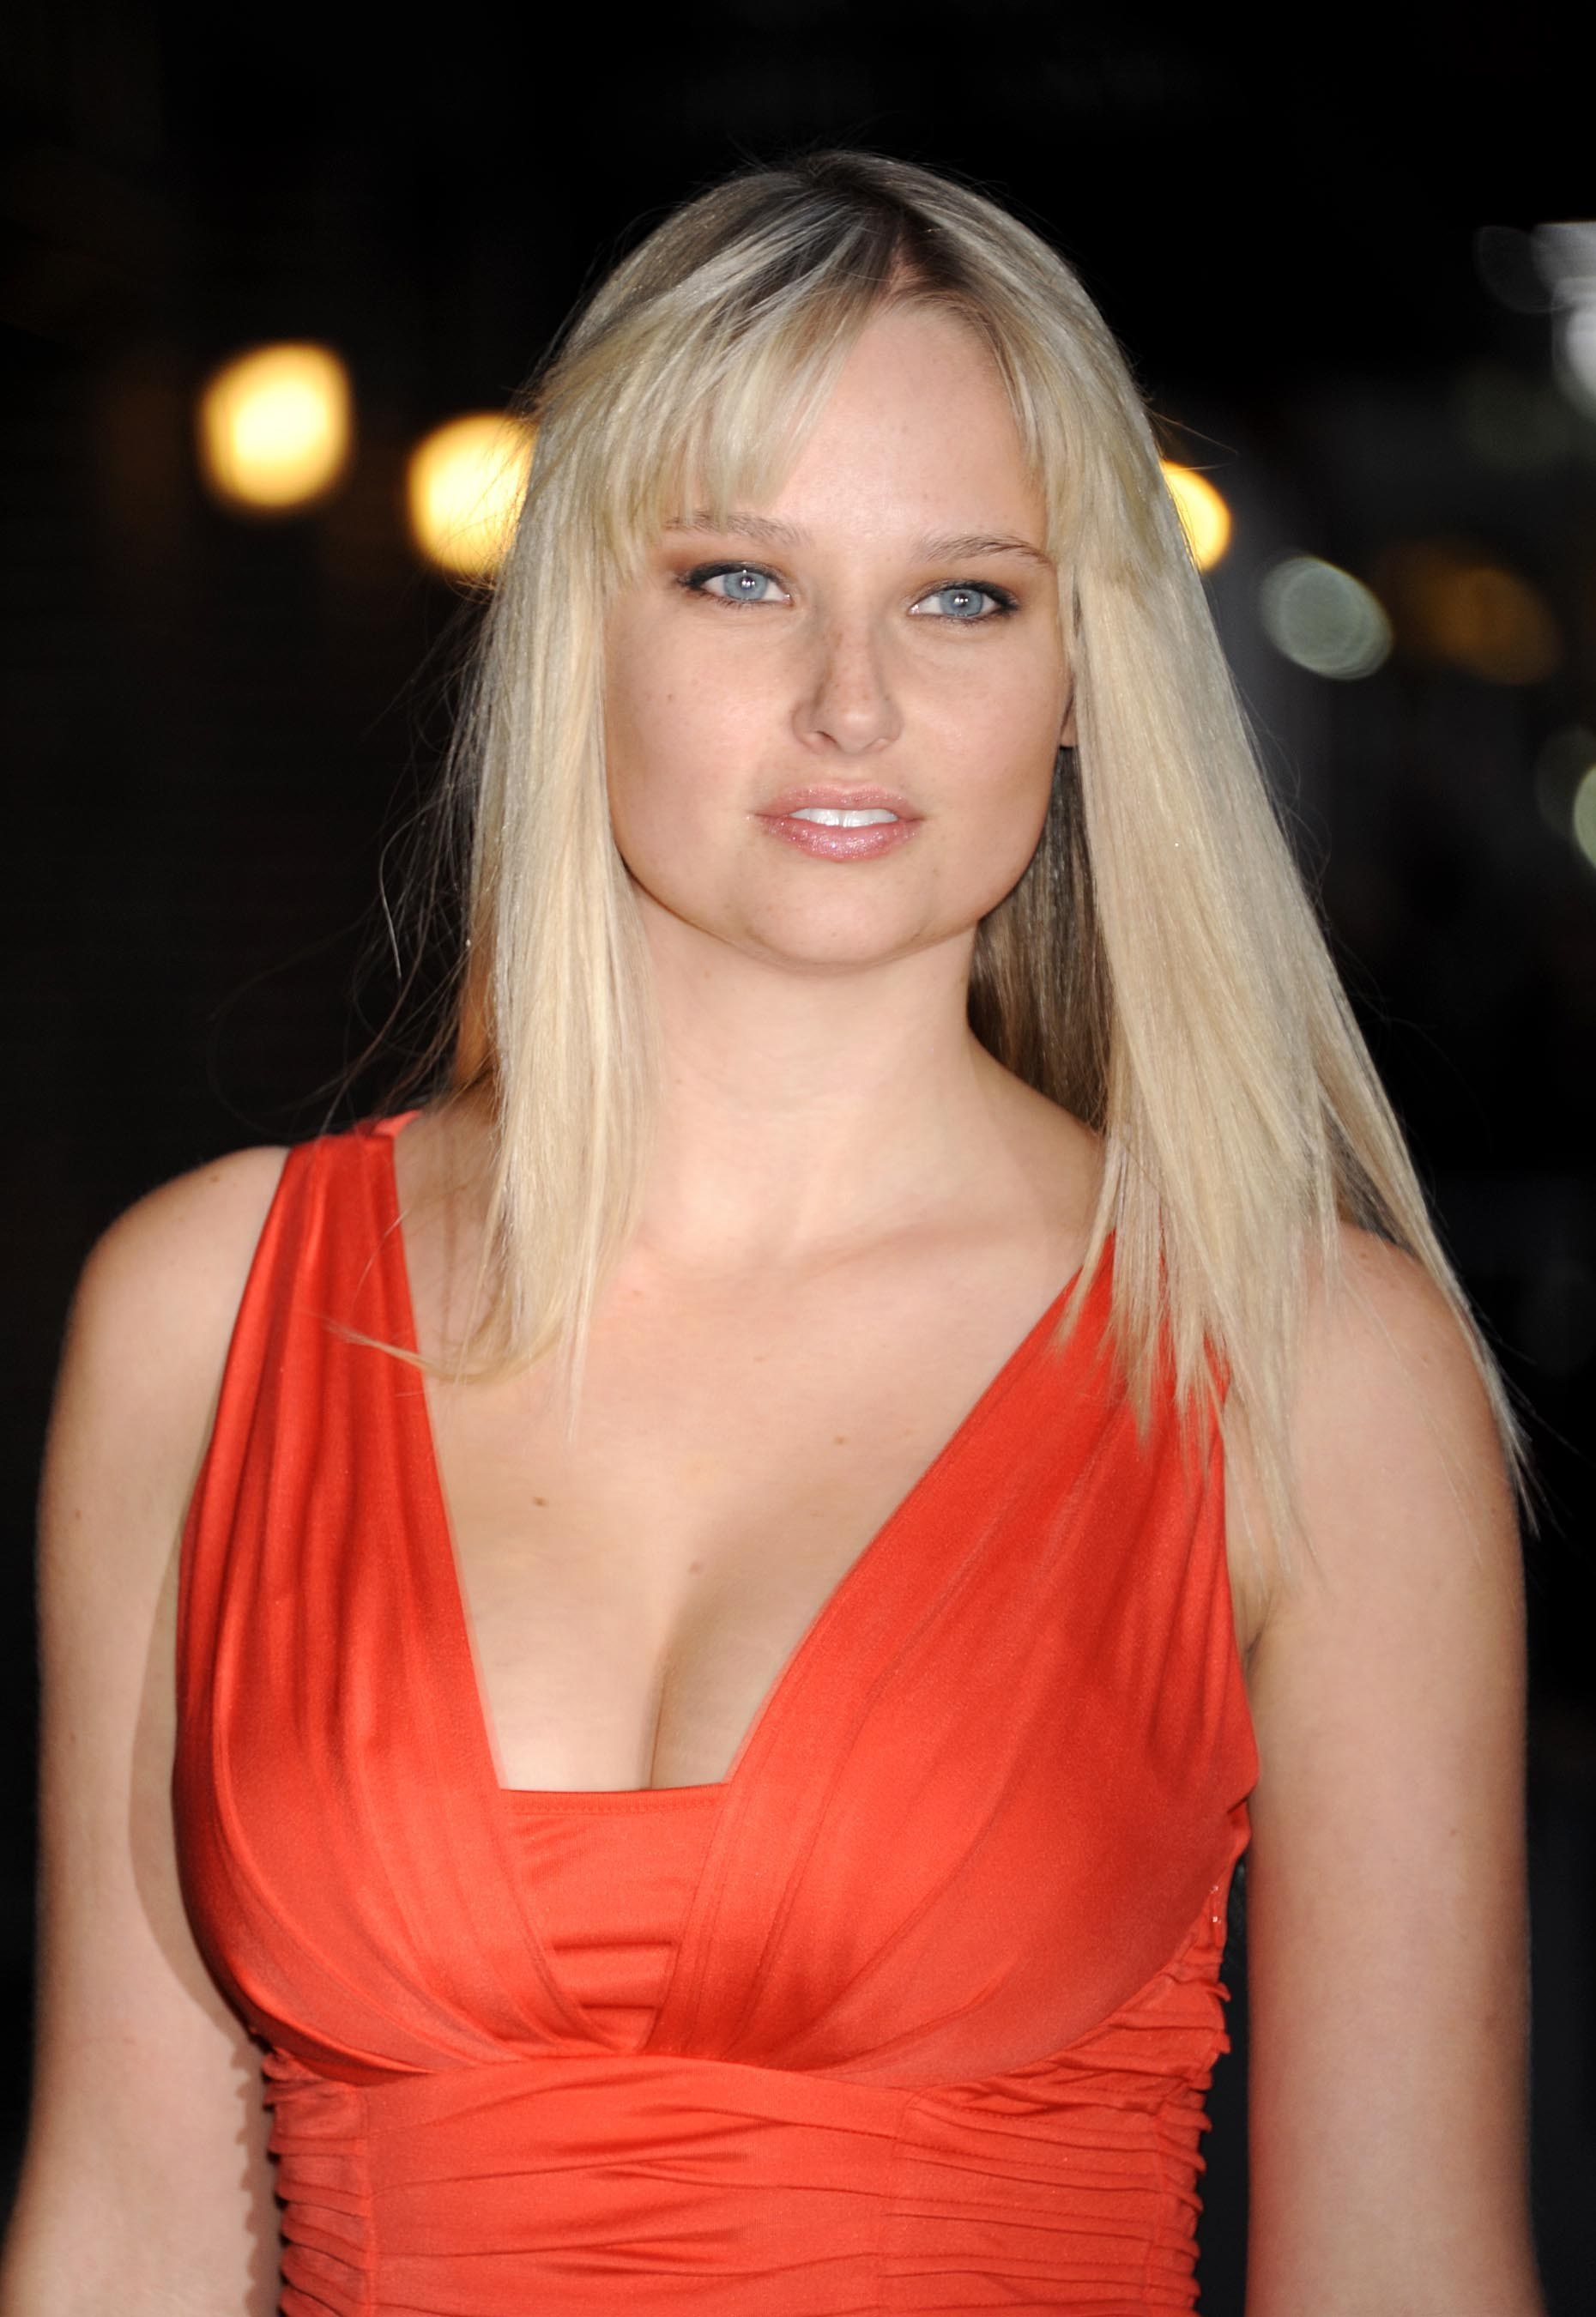 Genevieve Morton Known People Famous People News And